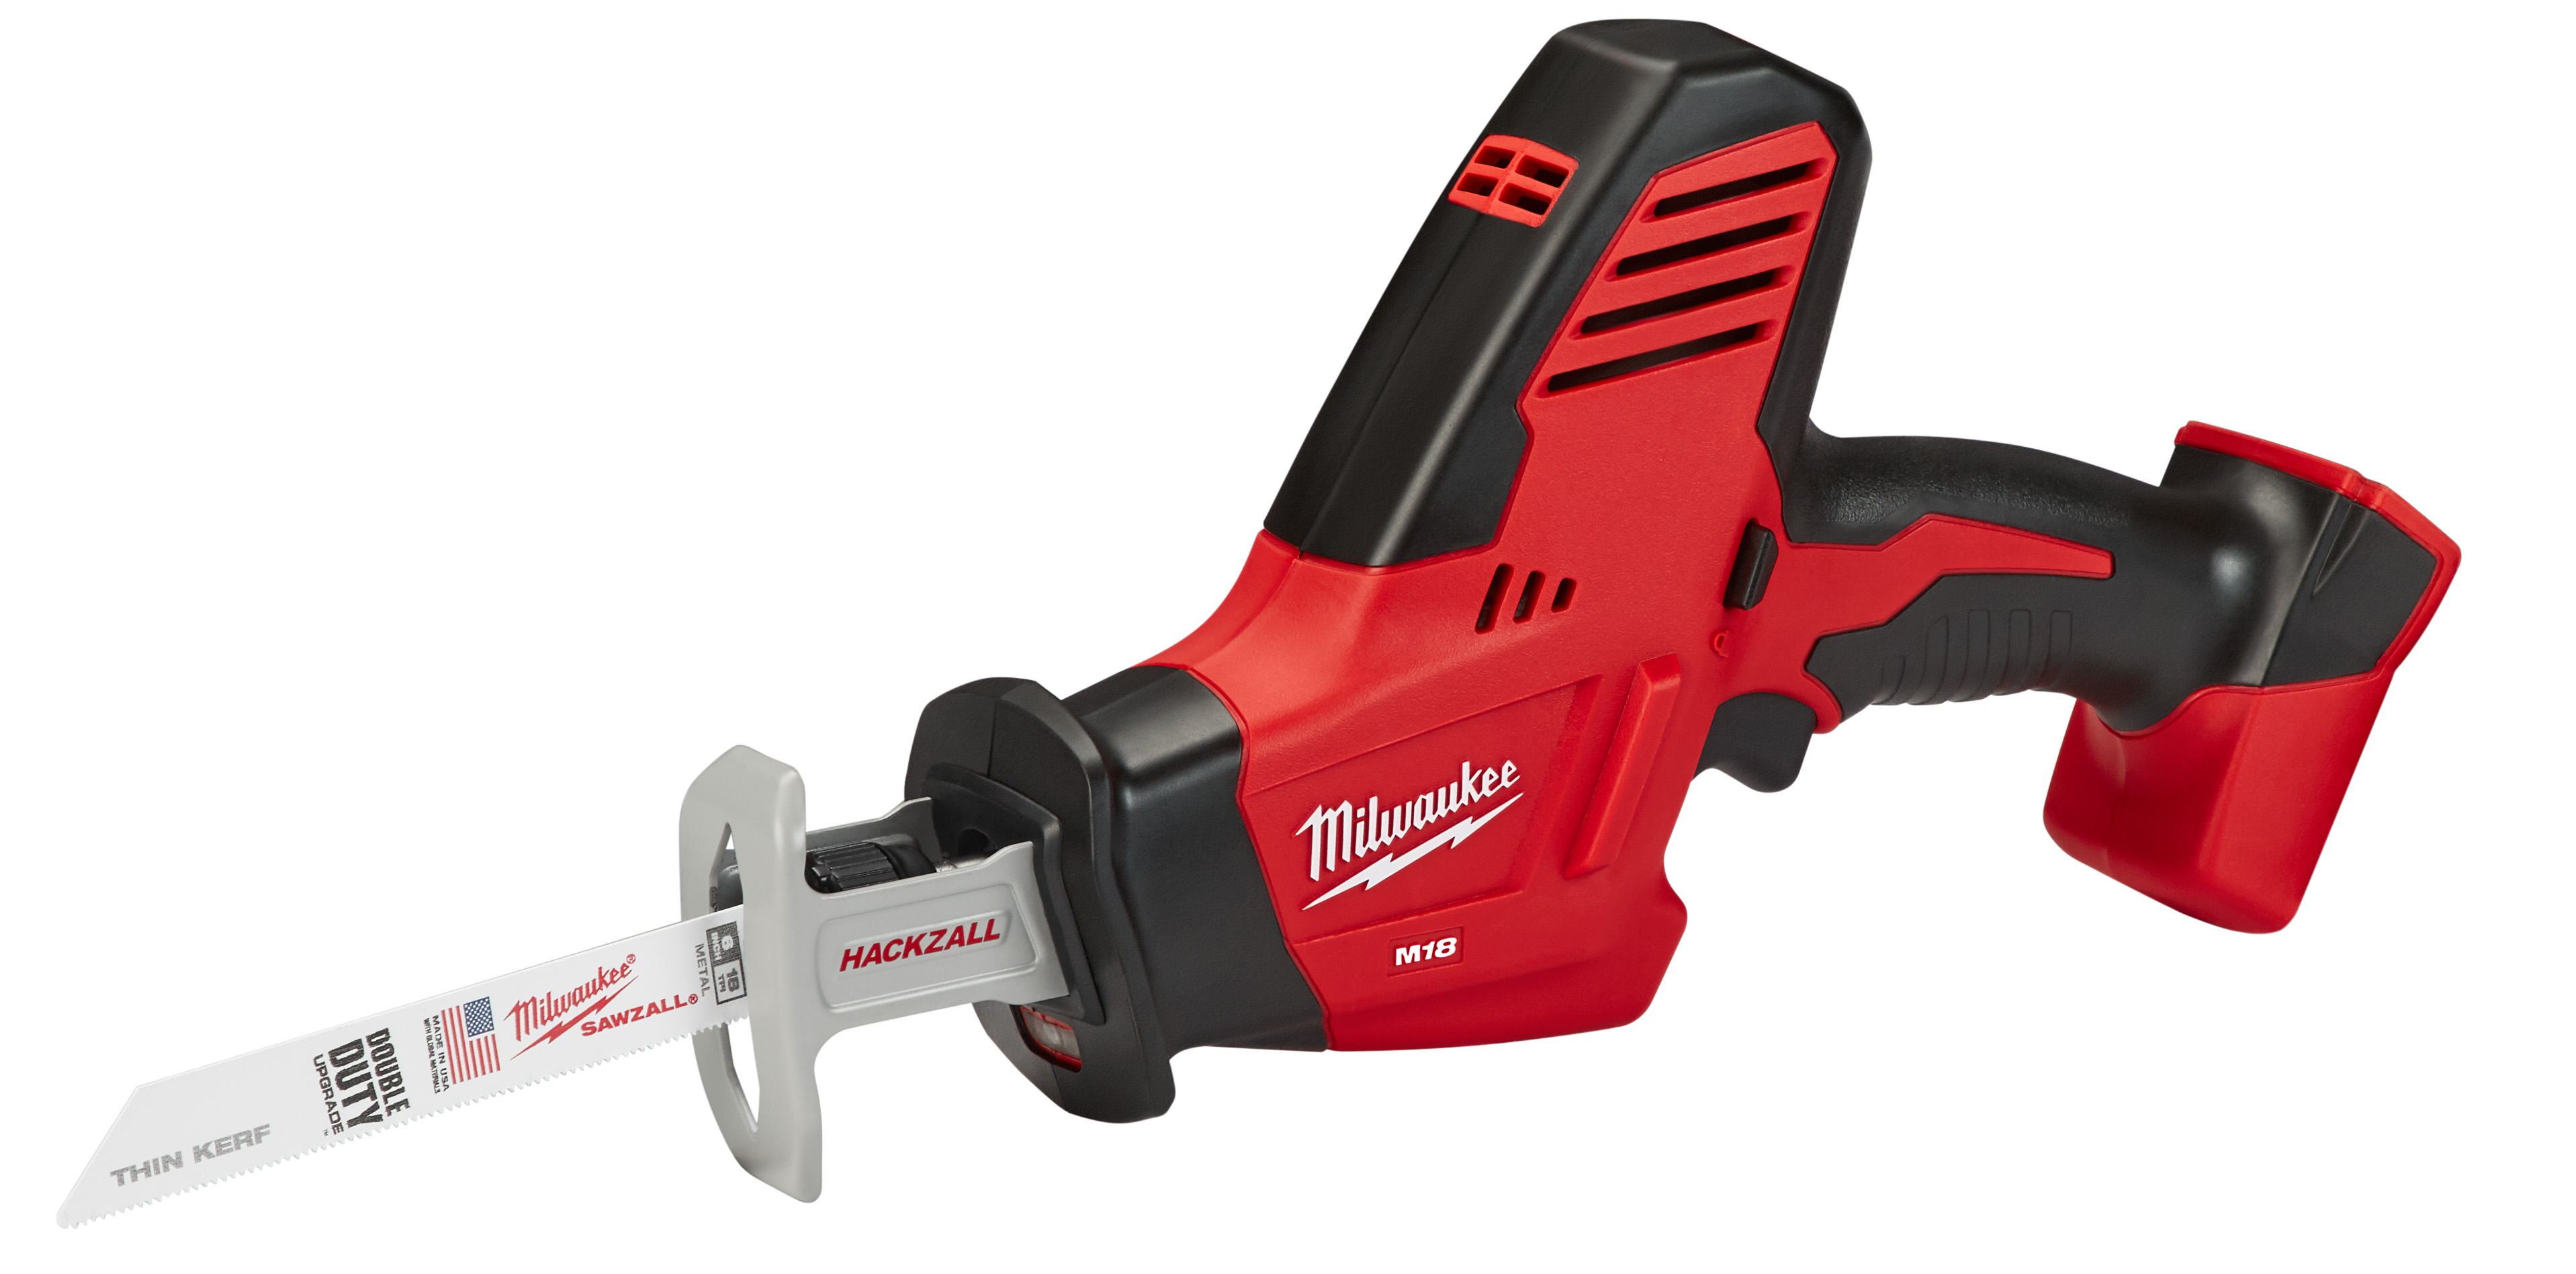 Milwaukee® M18™ 2625-20 1-Handed Anti-Vibration Cordless Reciprocating Saw, 3/4 in L Stroke, 3000 spm, Straight Cut, 18 VDC, 13 in OAL